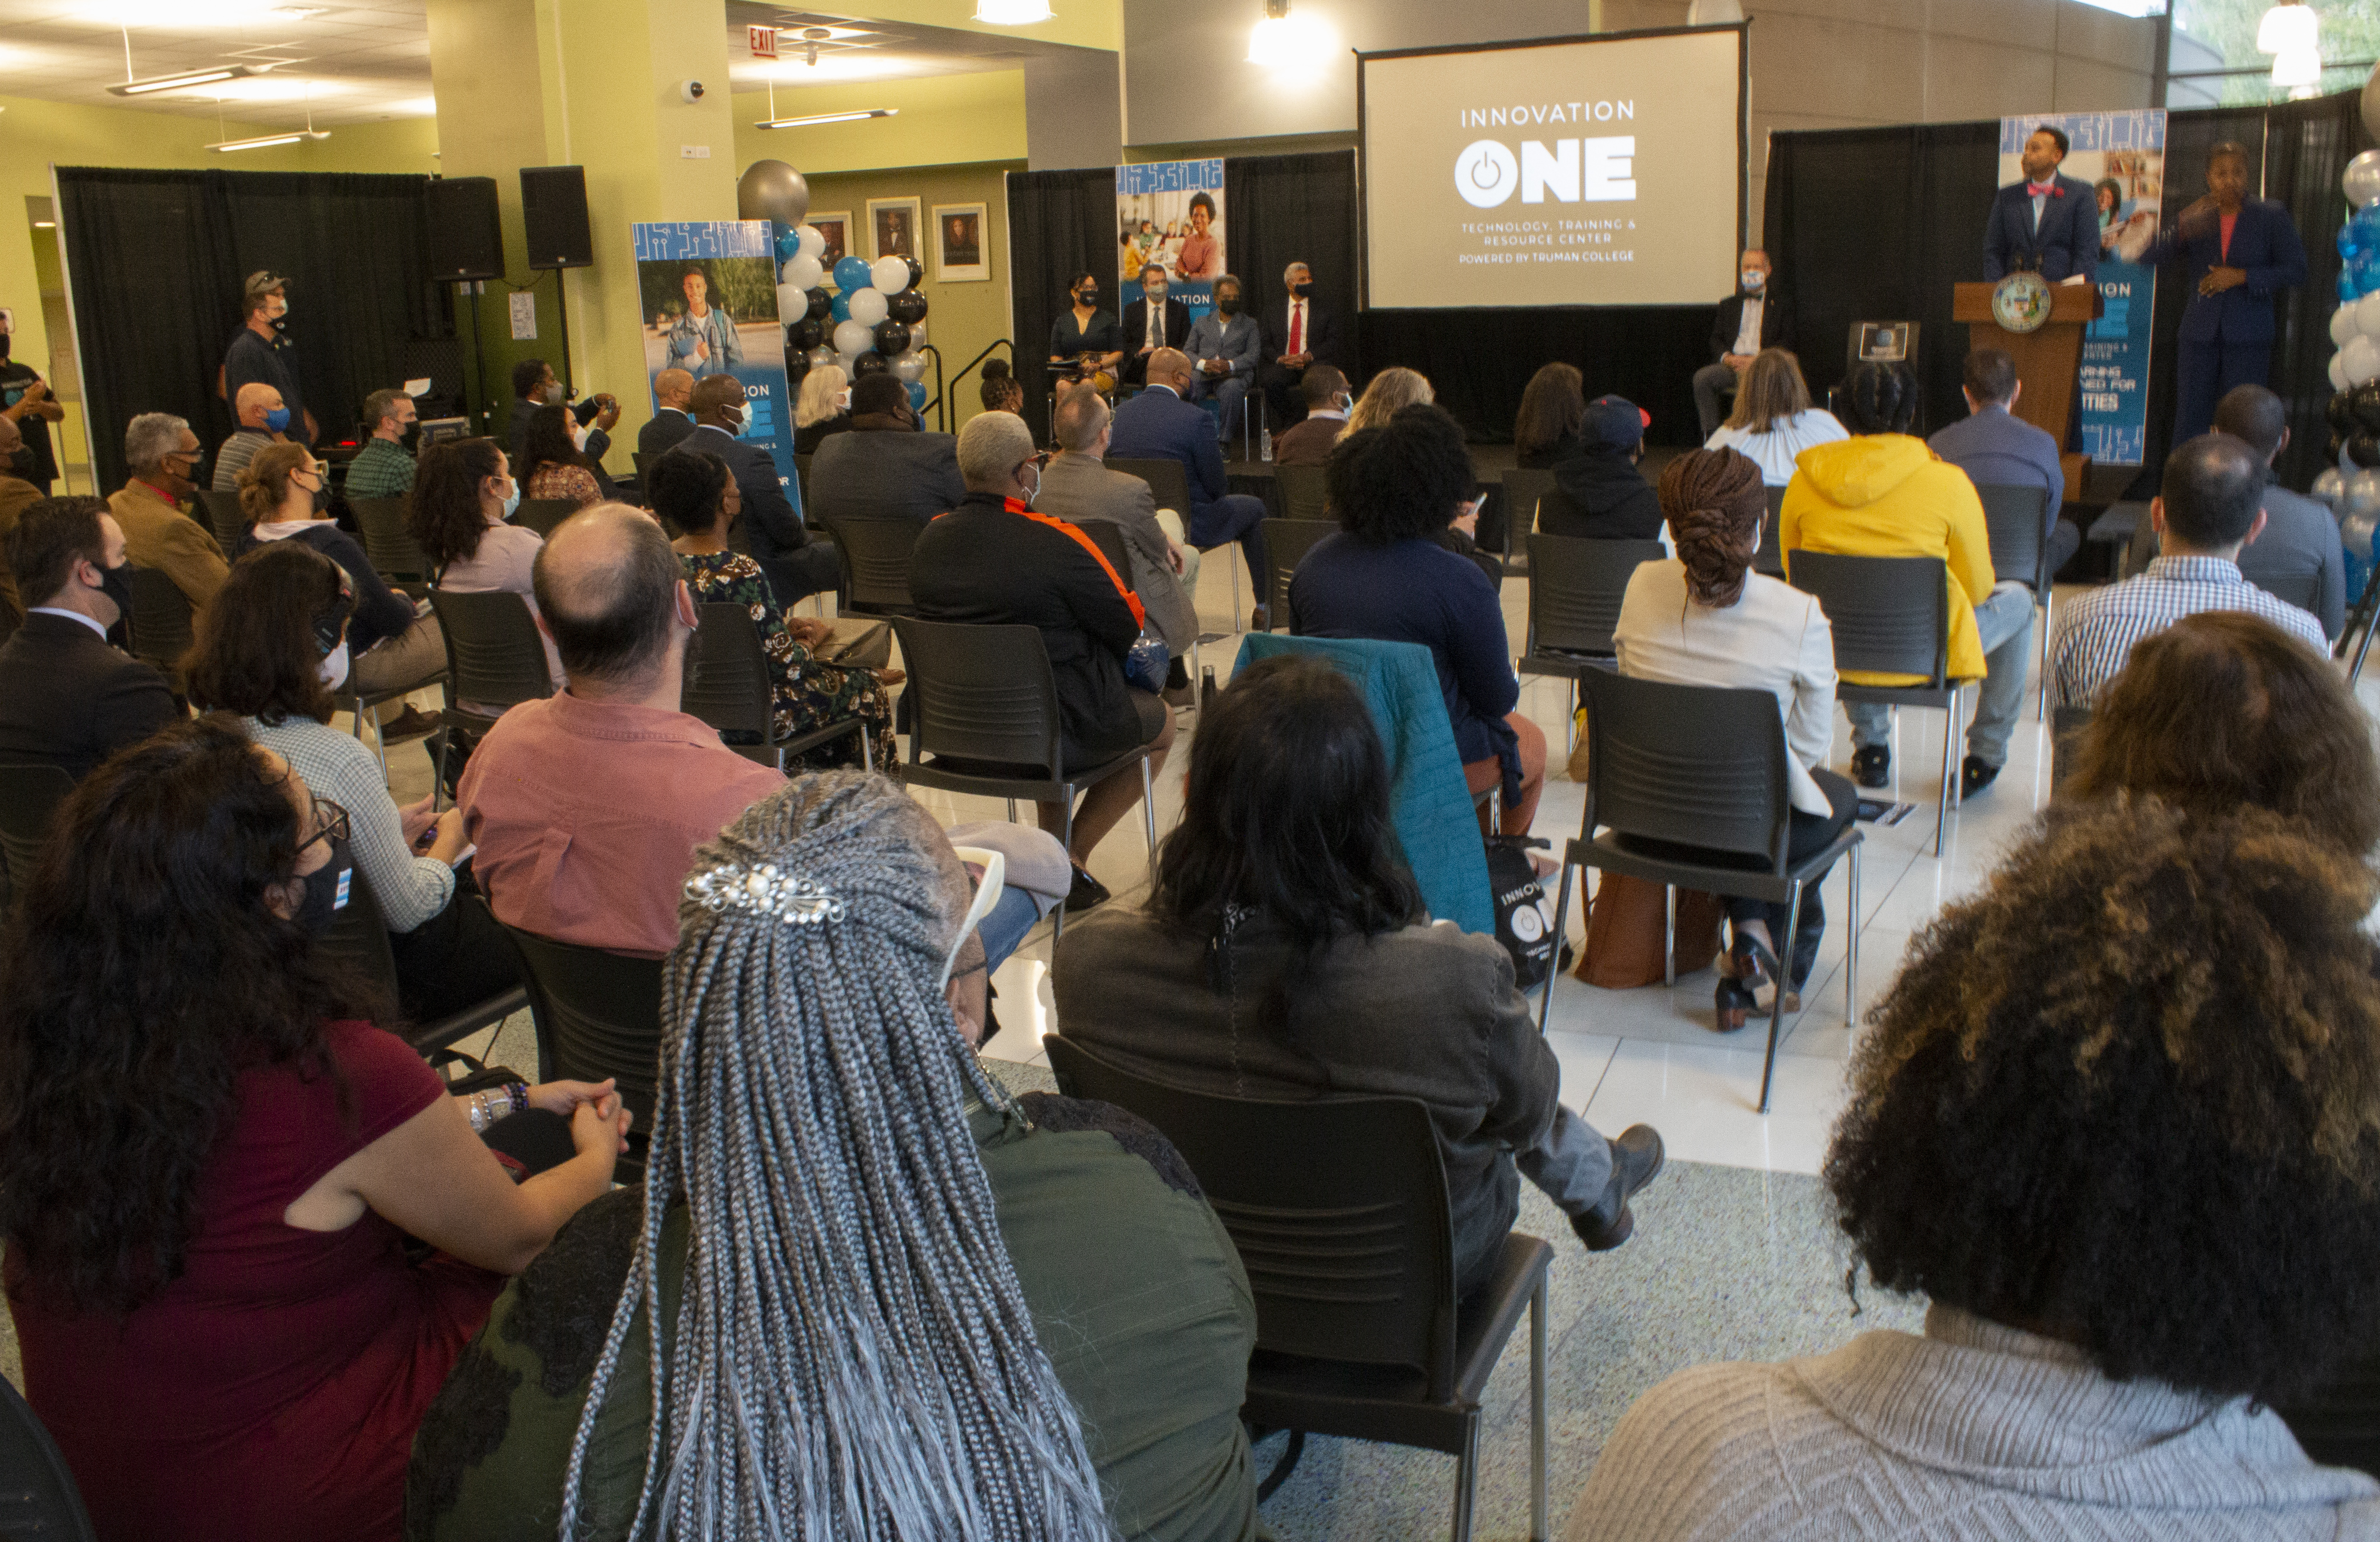 City Colleges of Chicago and other City leaders hold a press conference to announce the grand opening of Innovation One: Technology, Training and Resource Center at Truman College. | Brian Rich/Sun-Times